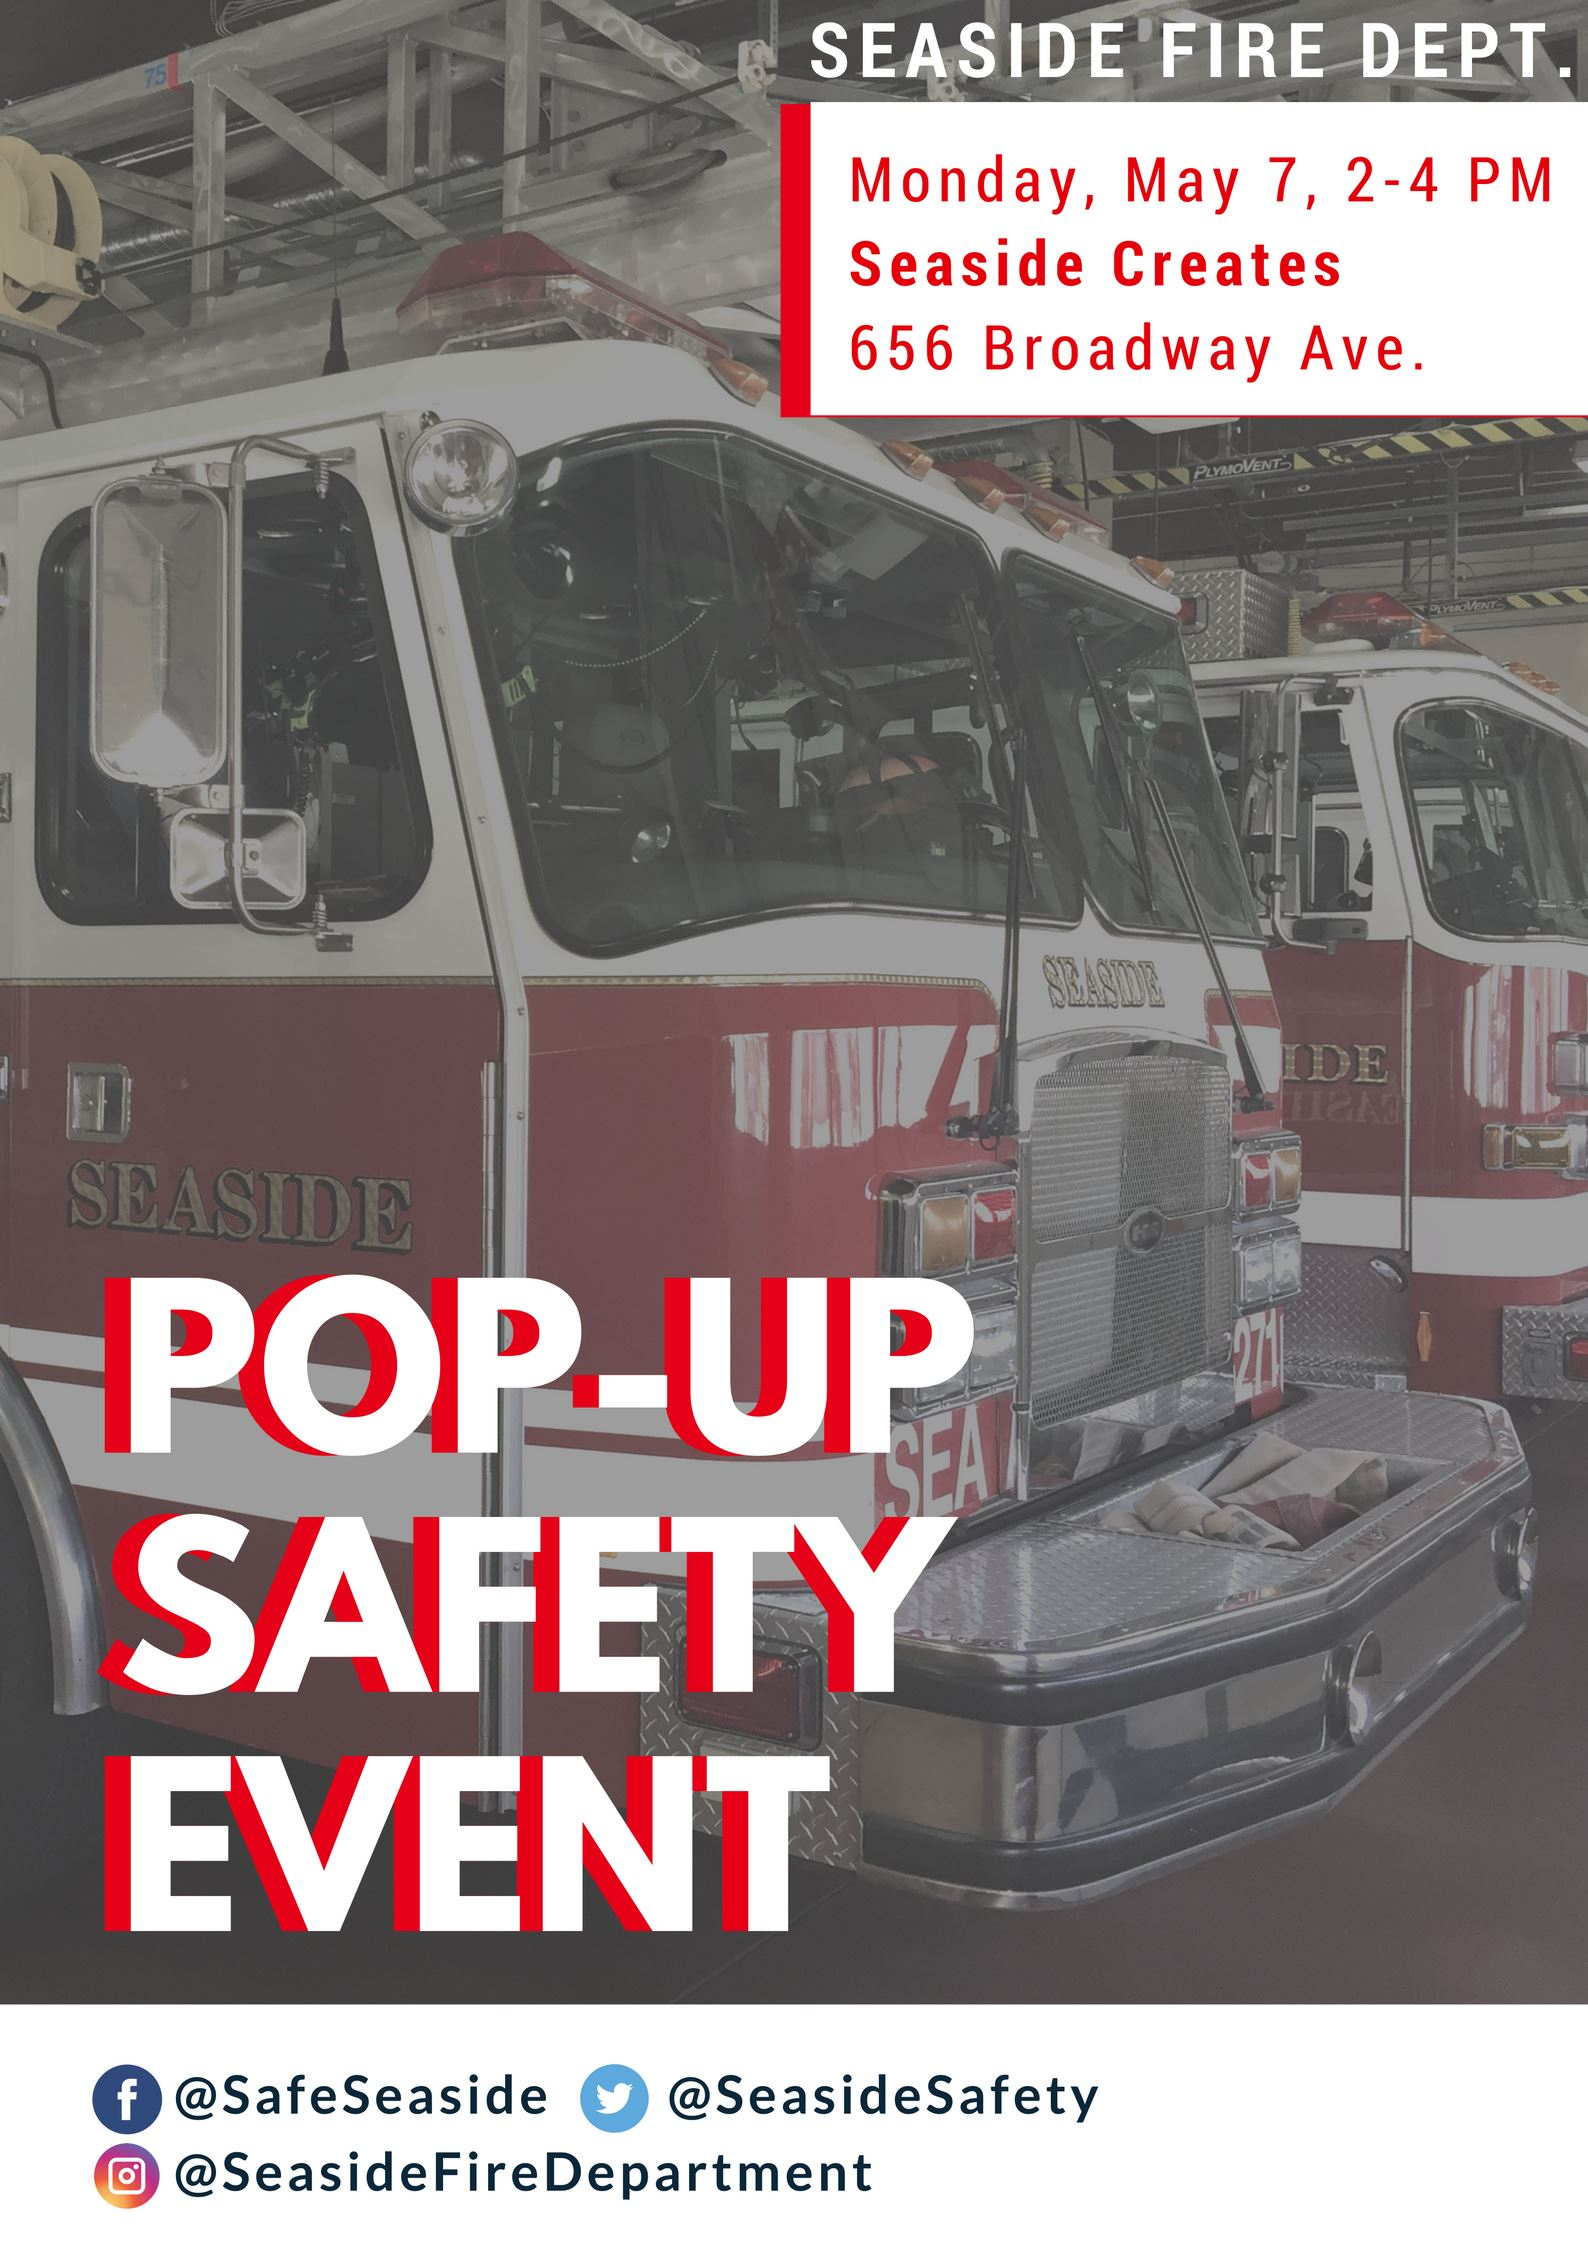 Pop-up safety event with image of fire engine